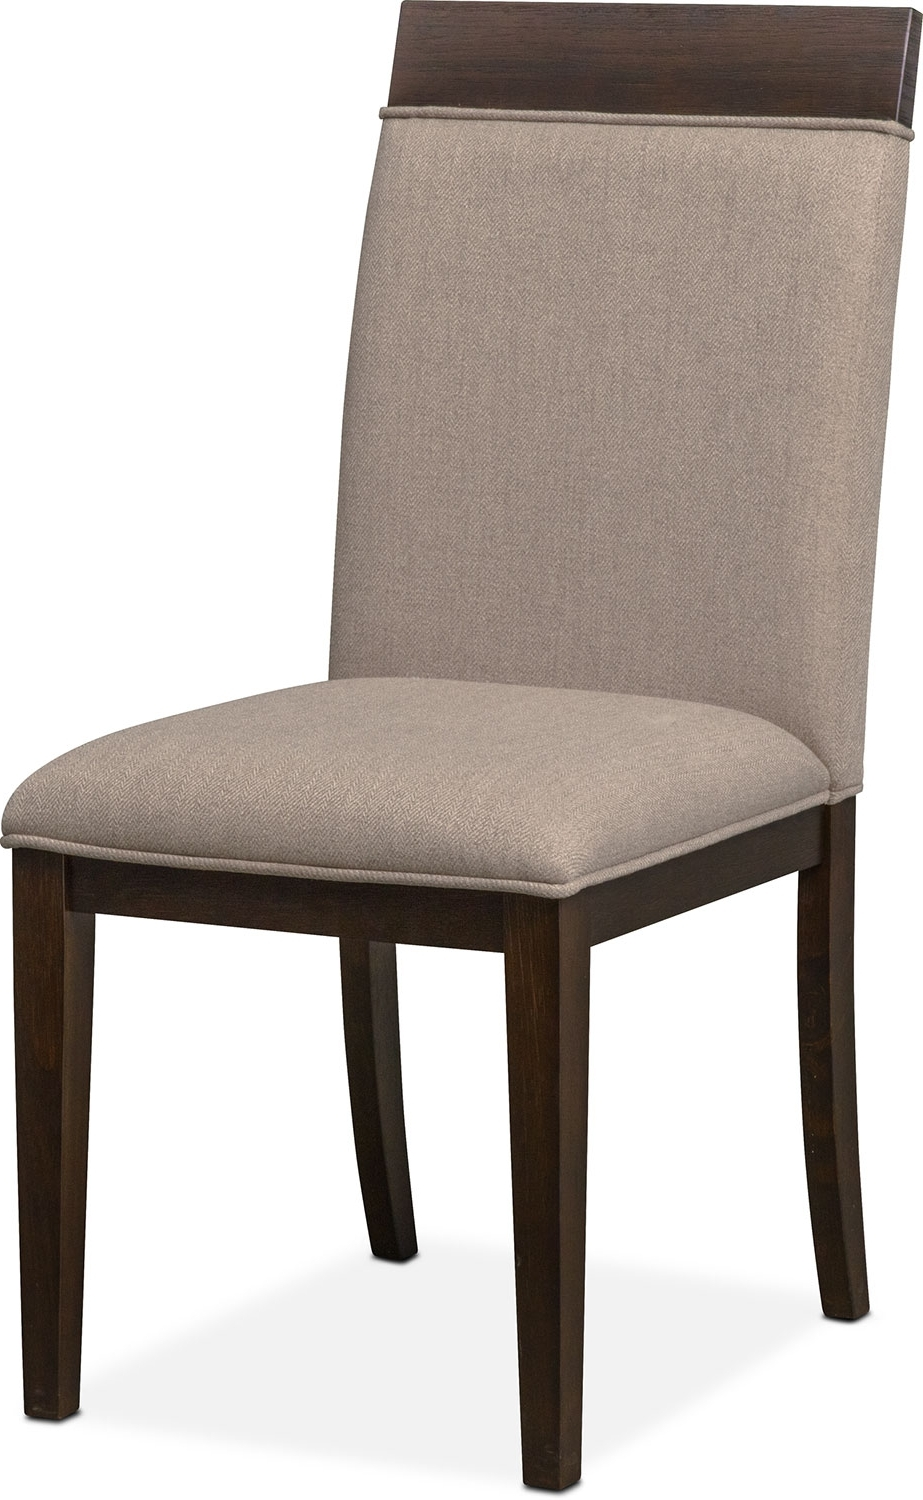 Value City Furniture And Mattresses With Regard To Recent Gavin 7 Piece Dining Sets With Clint Side Chairs (View 21 of 25)